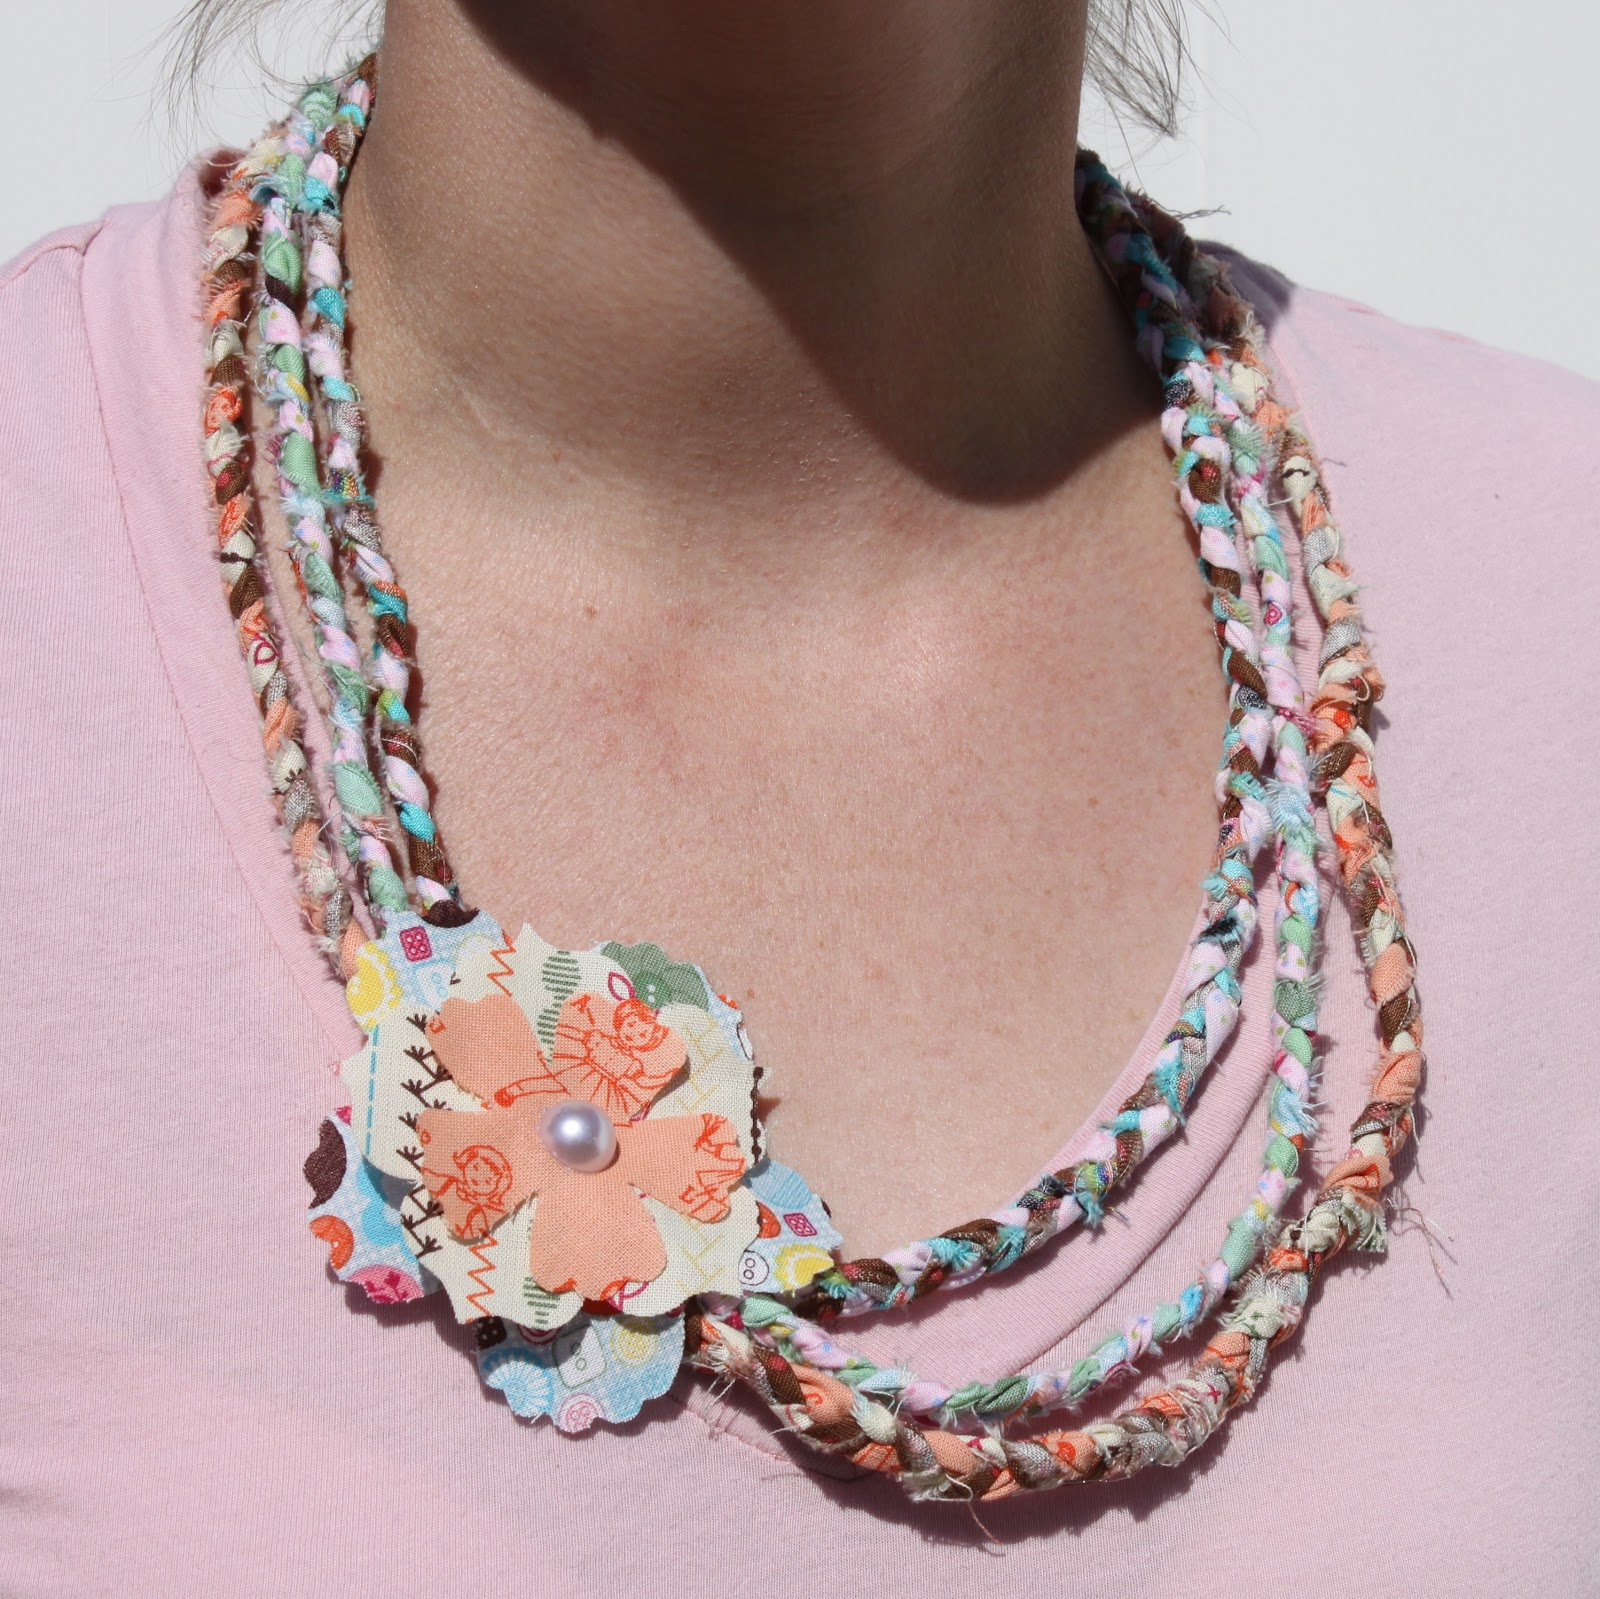 No Sew Braided Fabric Necklace - The Crafty Blog Stalker